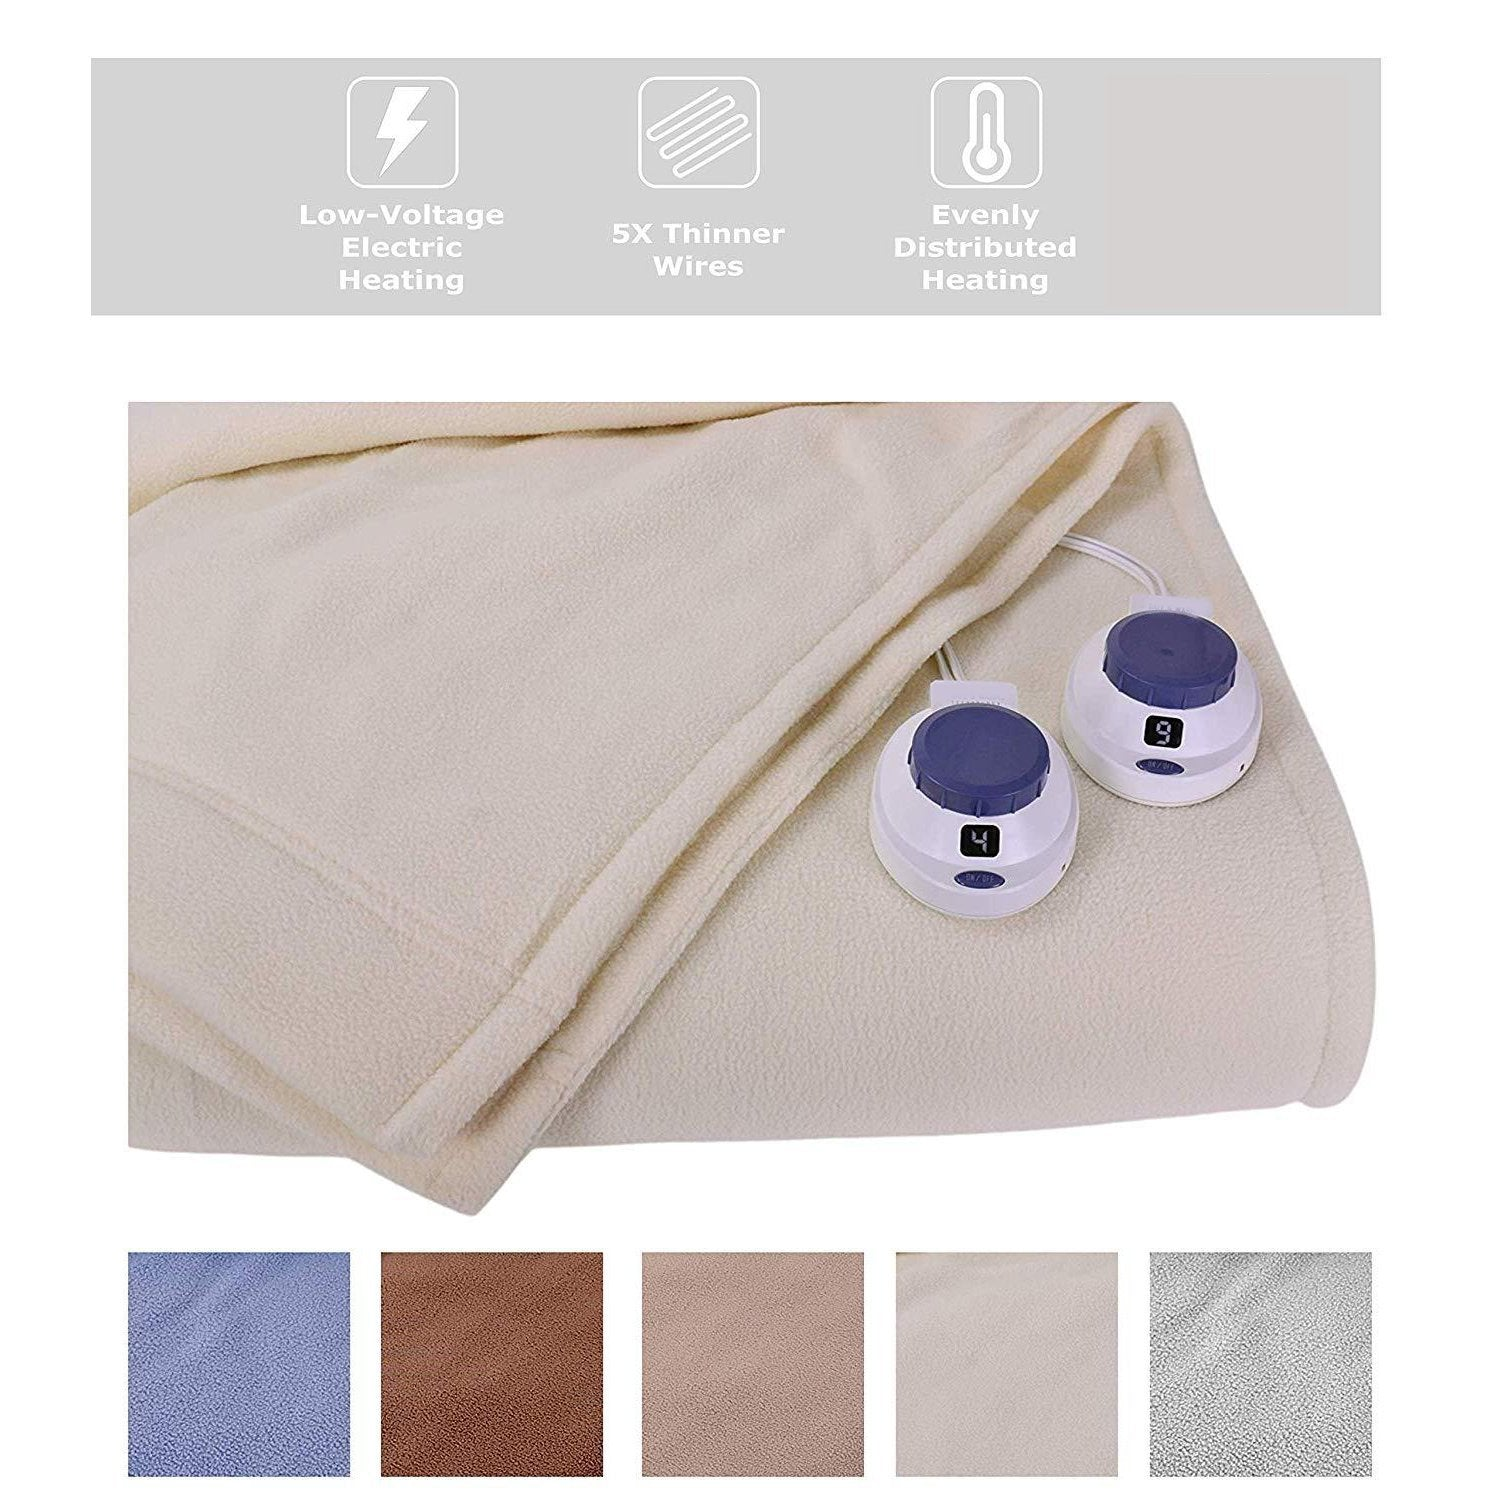 Luxury Low-Voltage Electric Heated Blanket